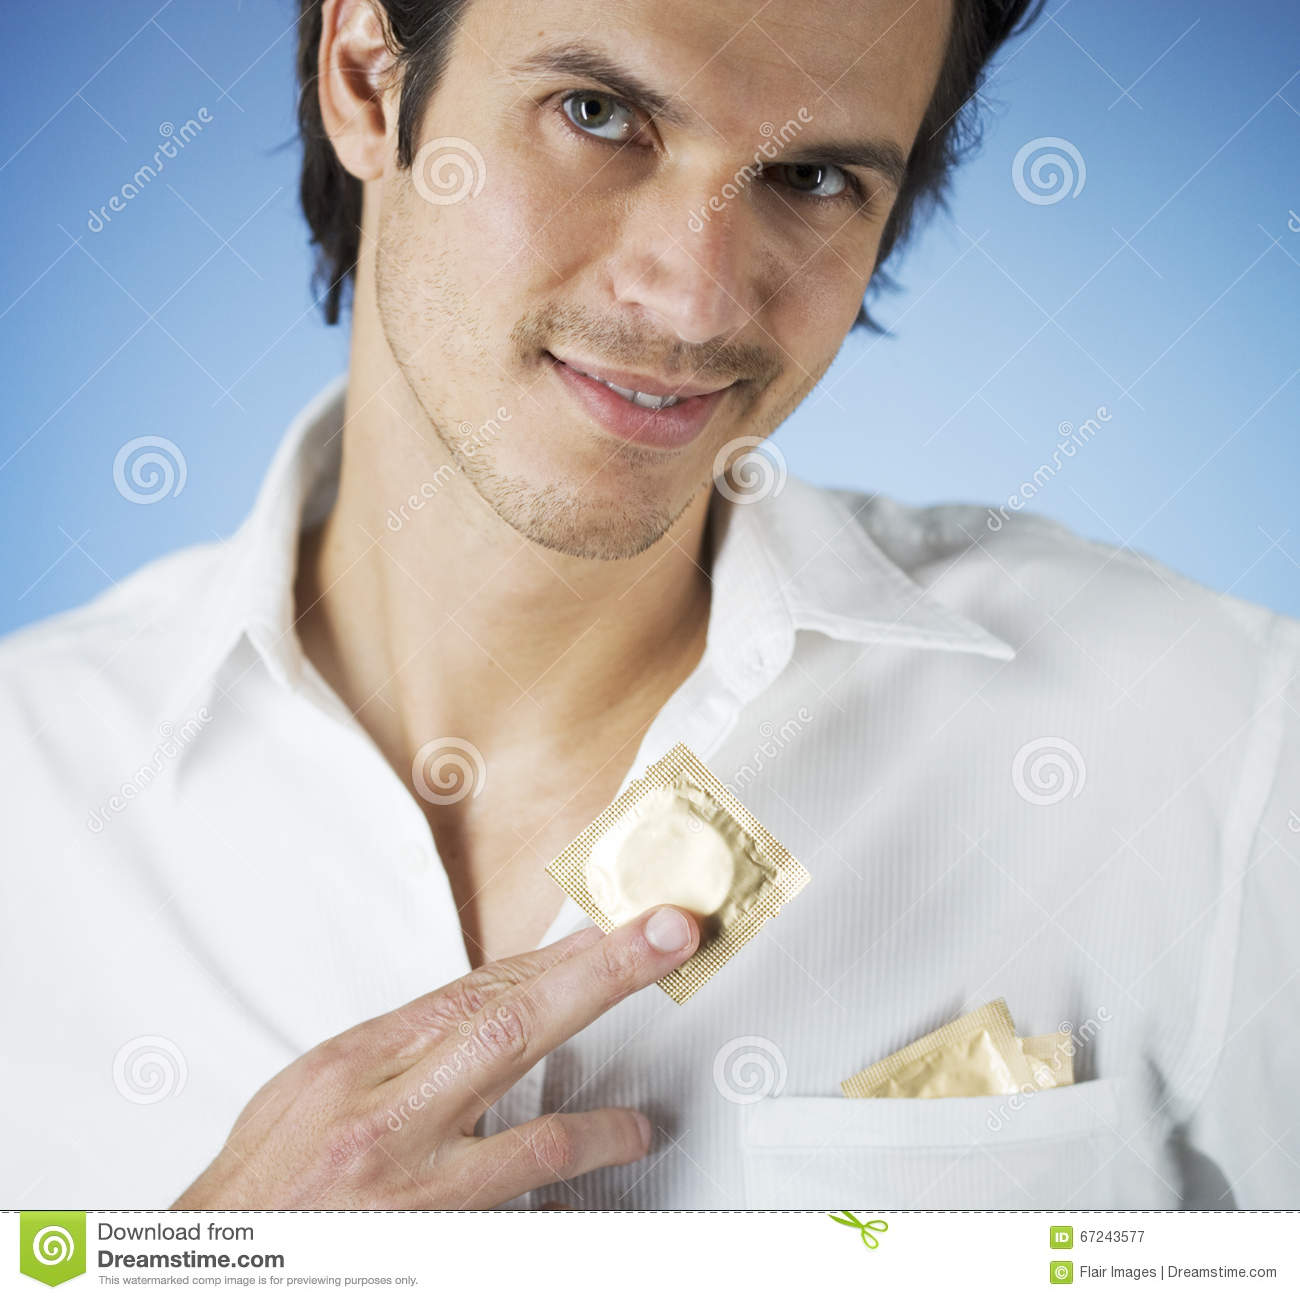 A Young Man Putting Condoms In His Shirt Pocket